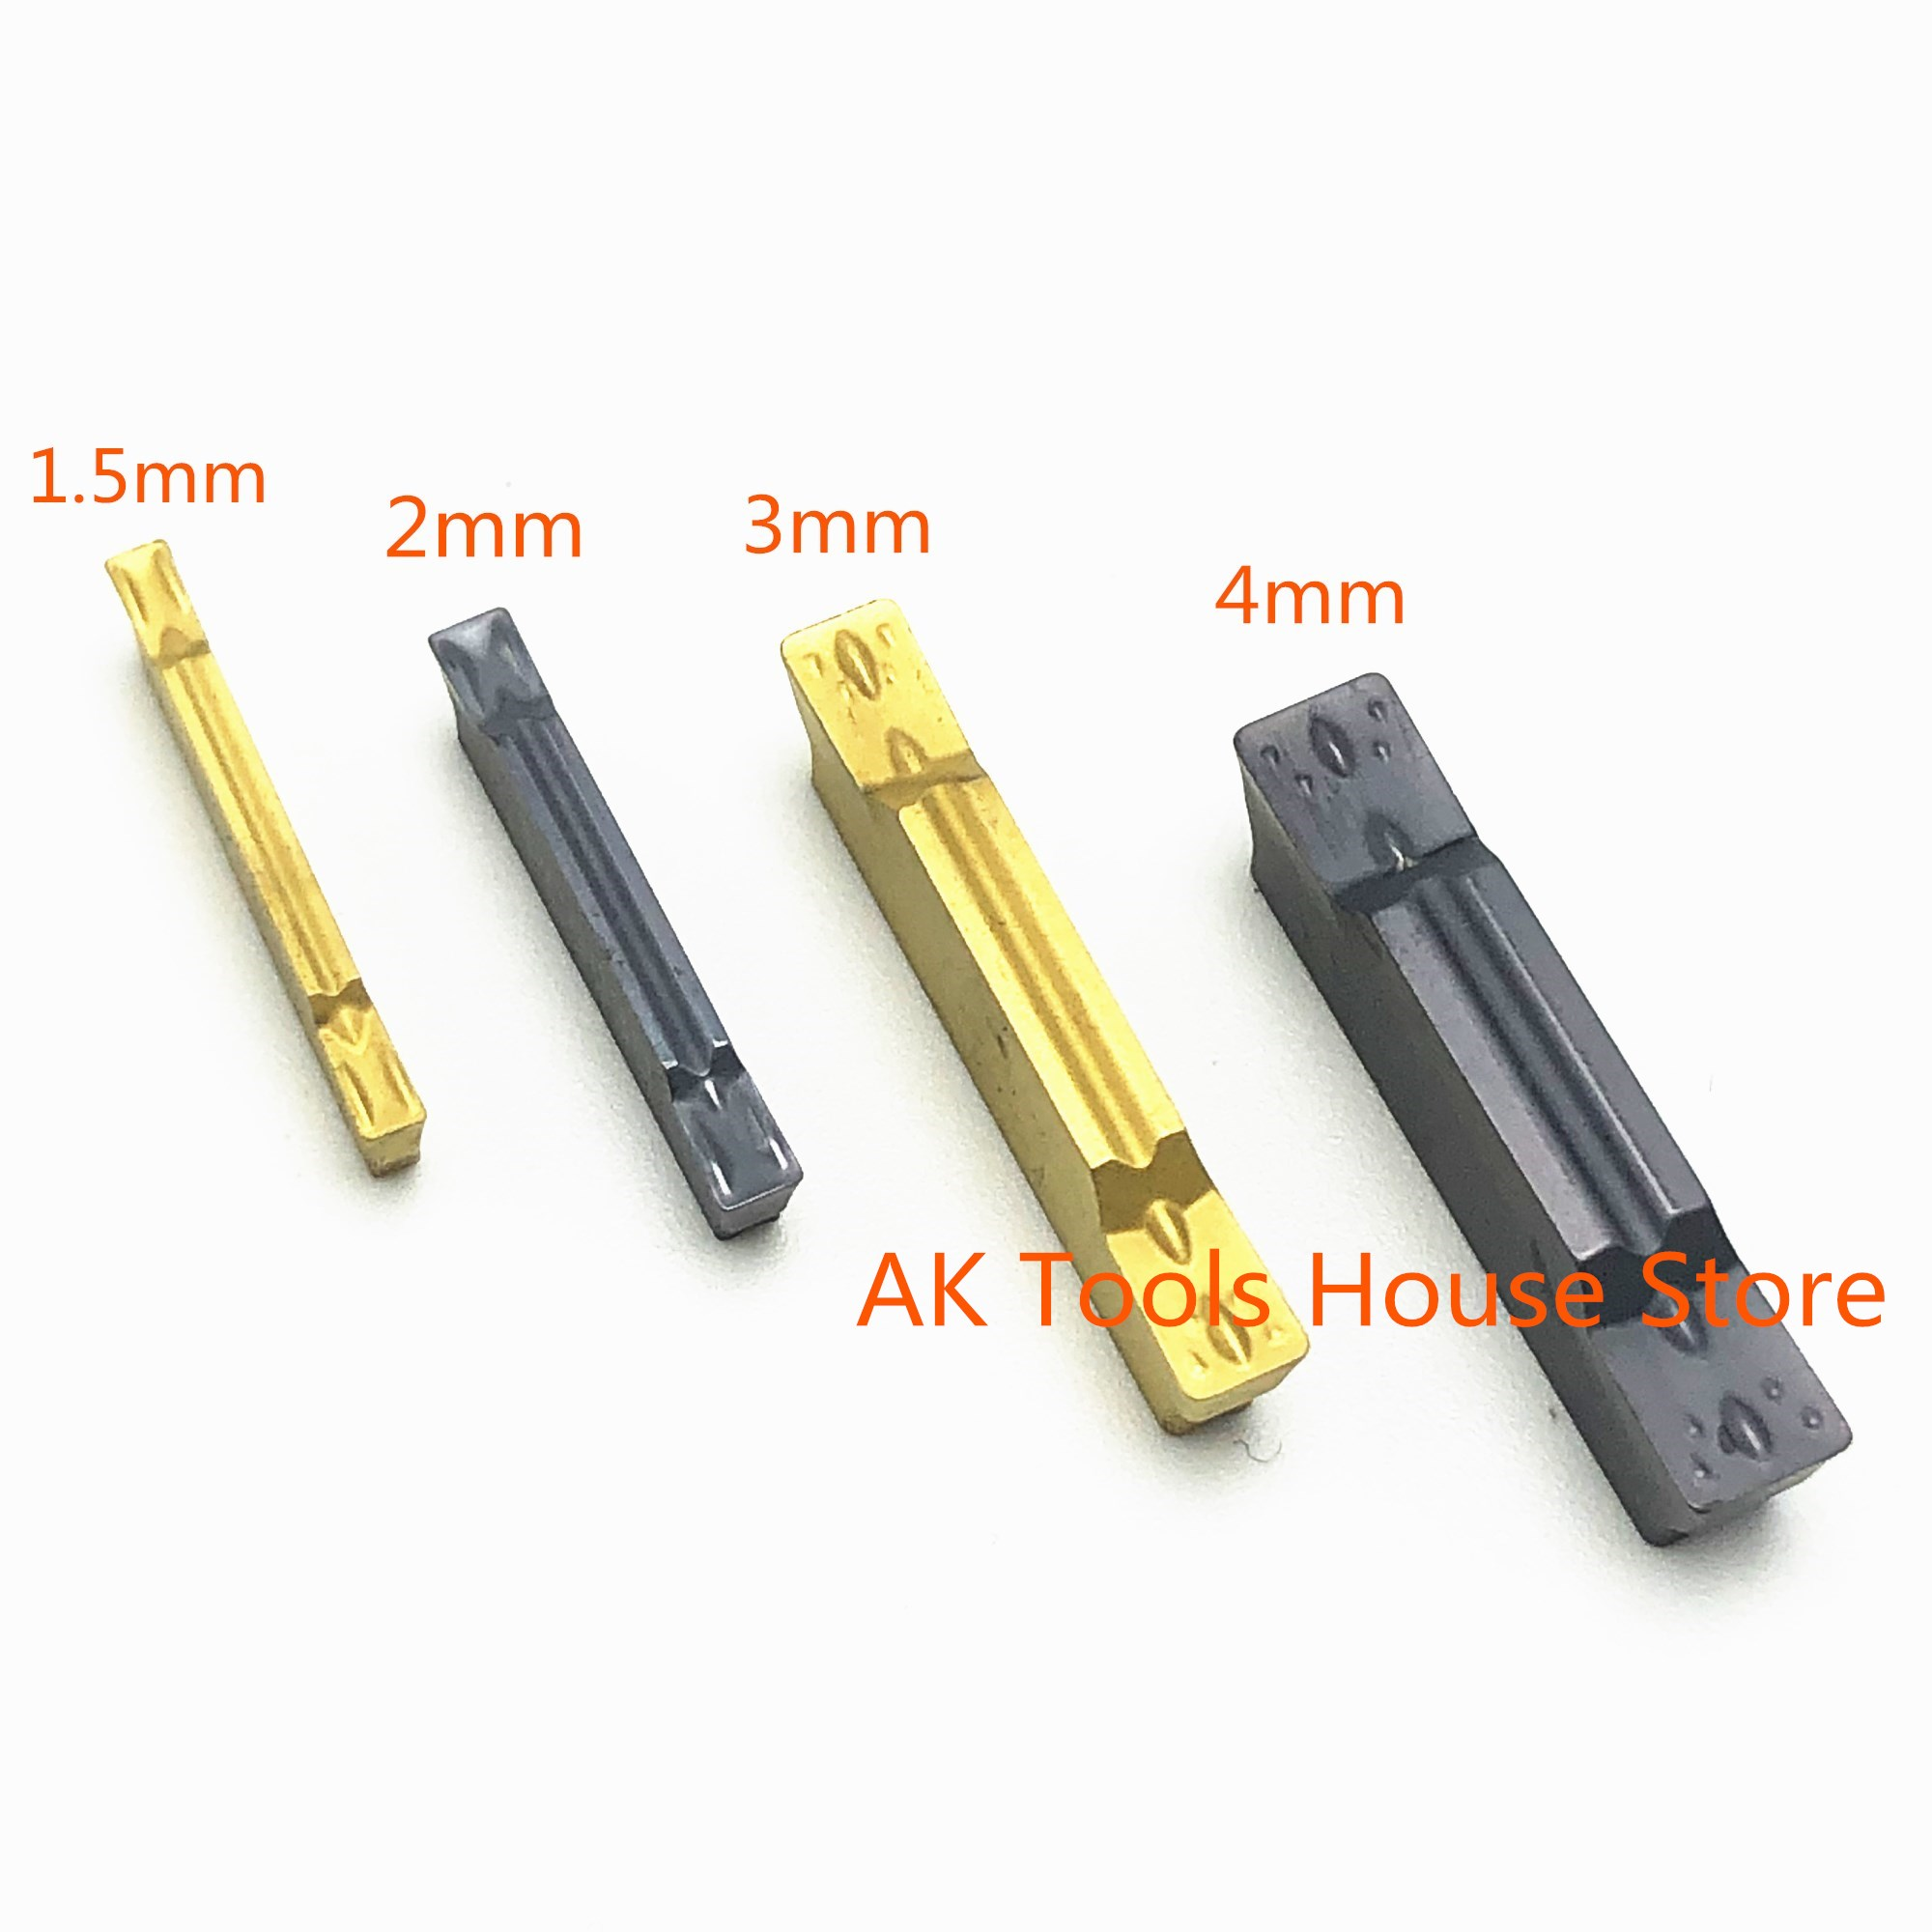 10PCS grooving tool MGMN150 MGMN200 MGMN300 MGMN400 NC3020 NC3030 PC9030 slotted and slotted carbide metal turning lathe tools